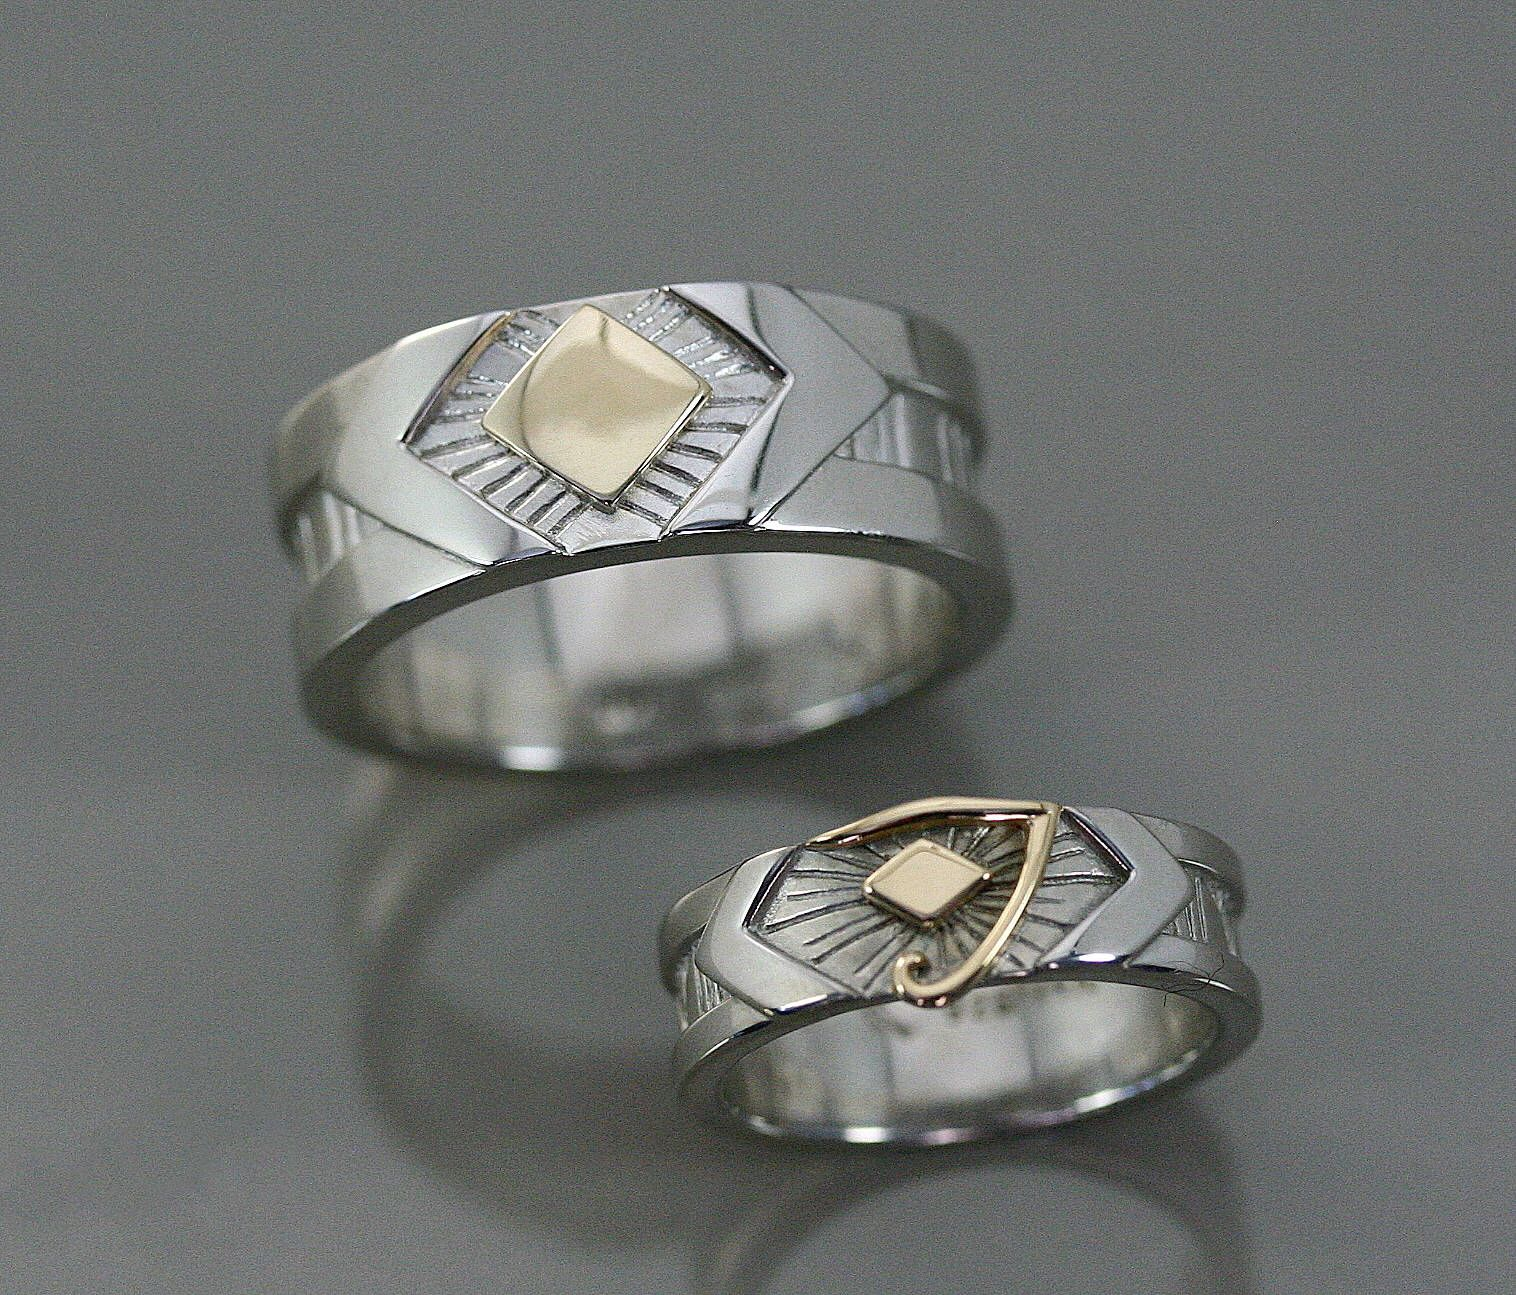 egyptian erstwhile stories engagement of vintage top wedding blogs jewelry rings